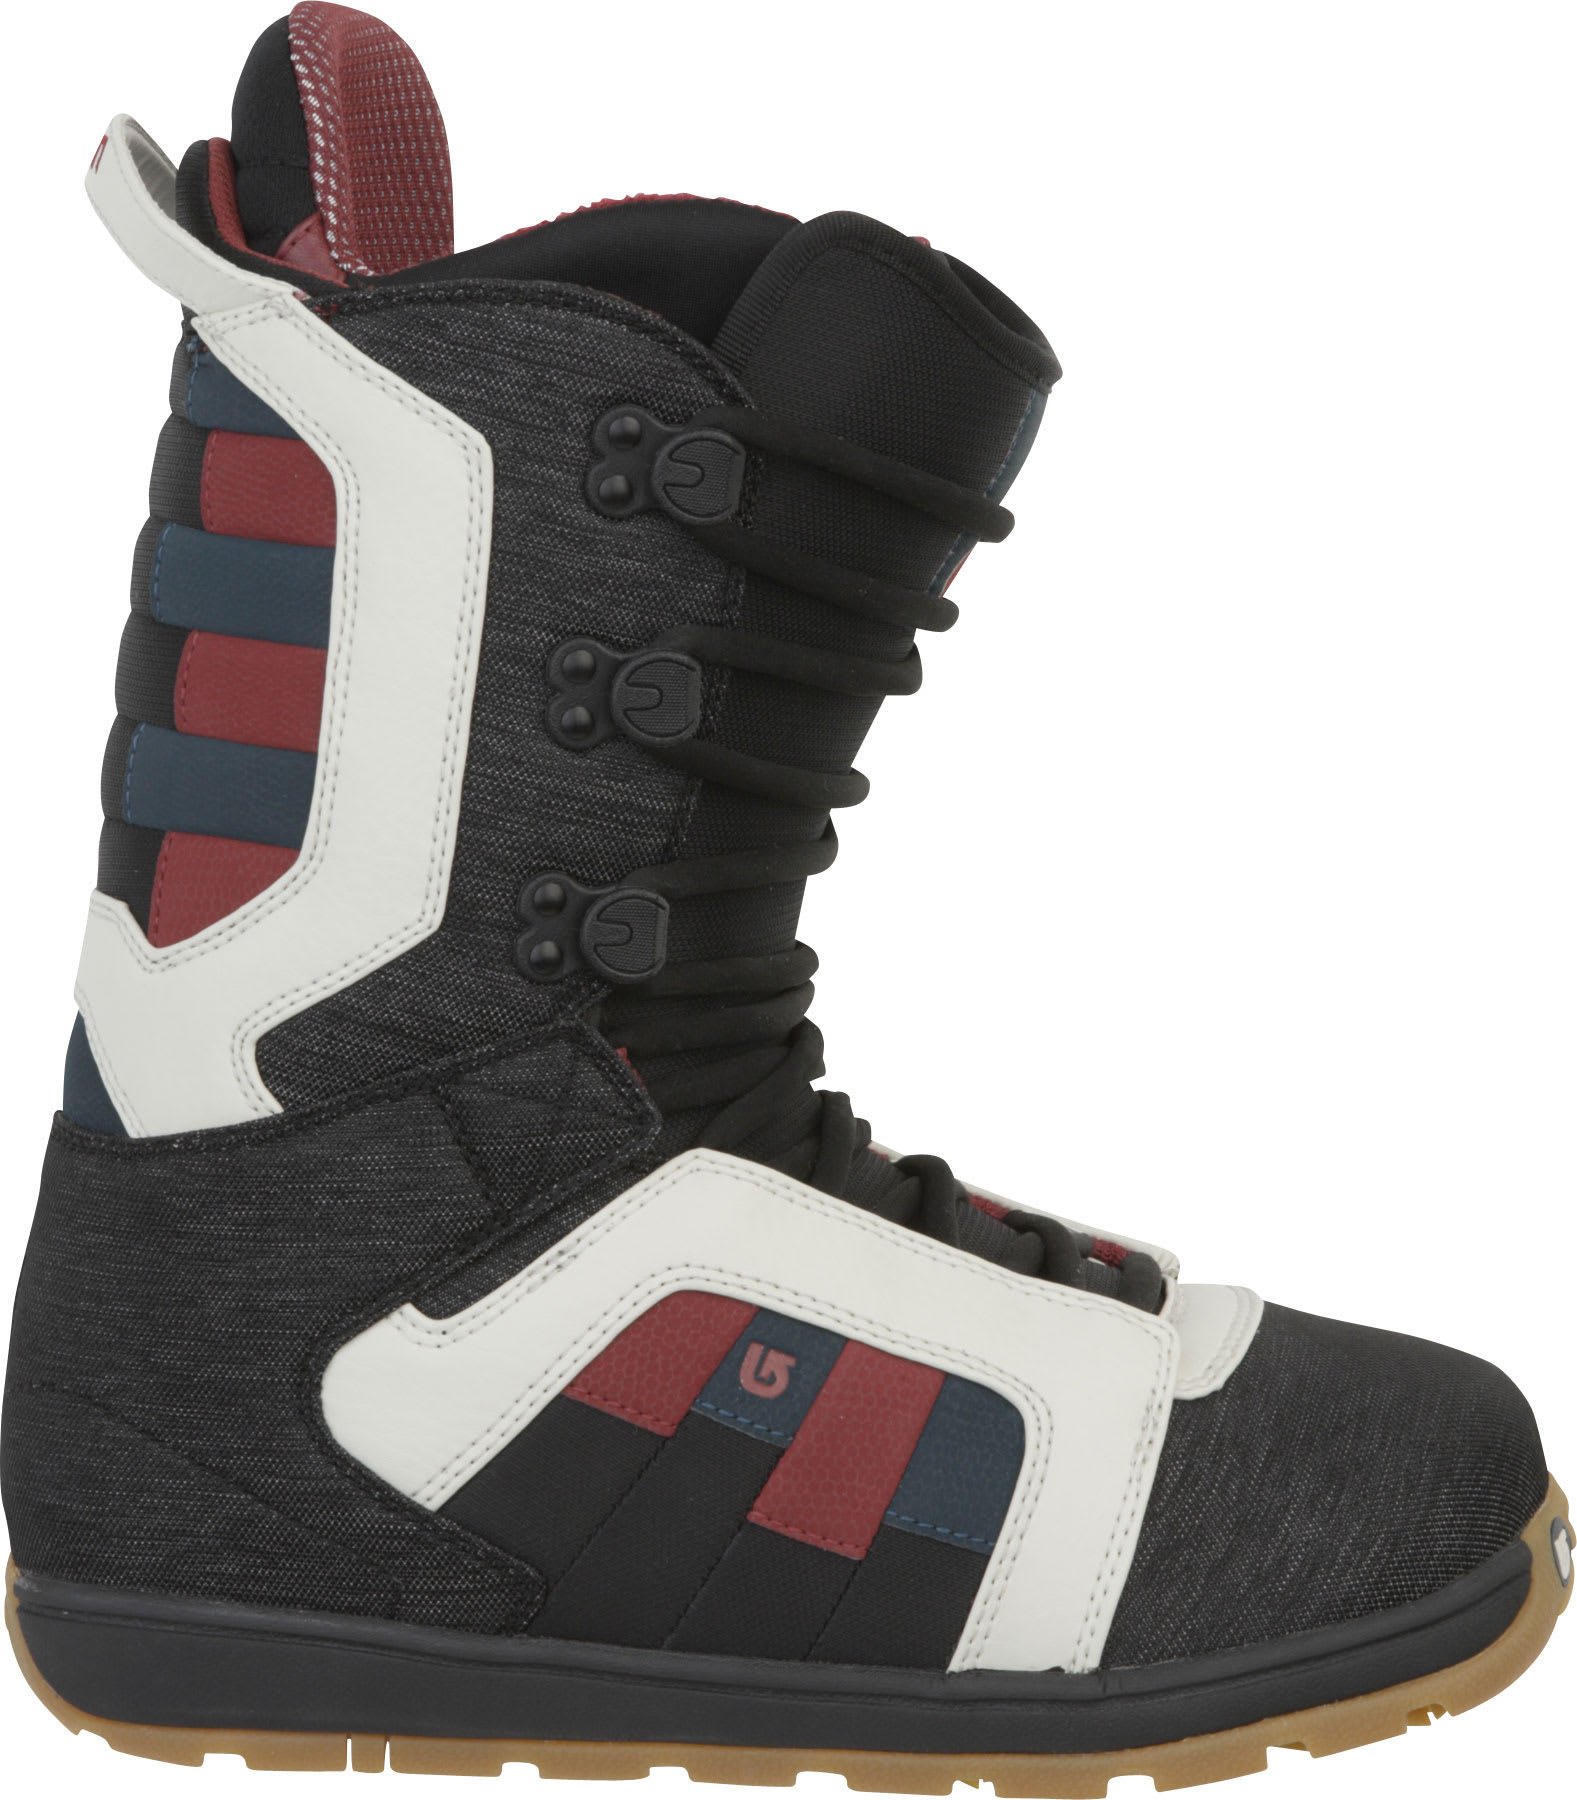 Shop for Burton Jeremy Jones Snowboard Boots Black Denim/Multi - Men's